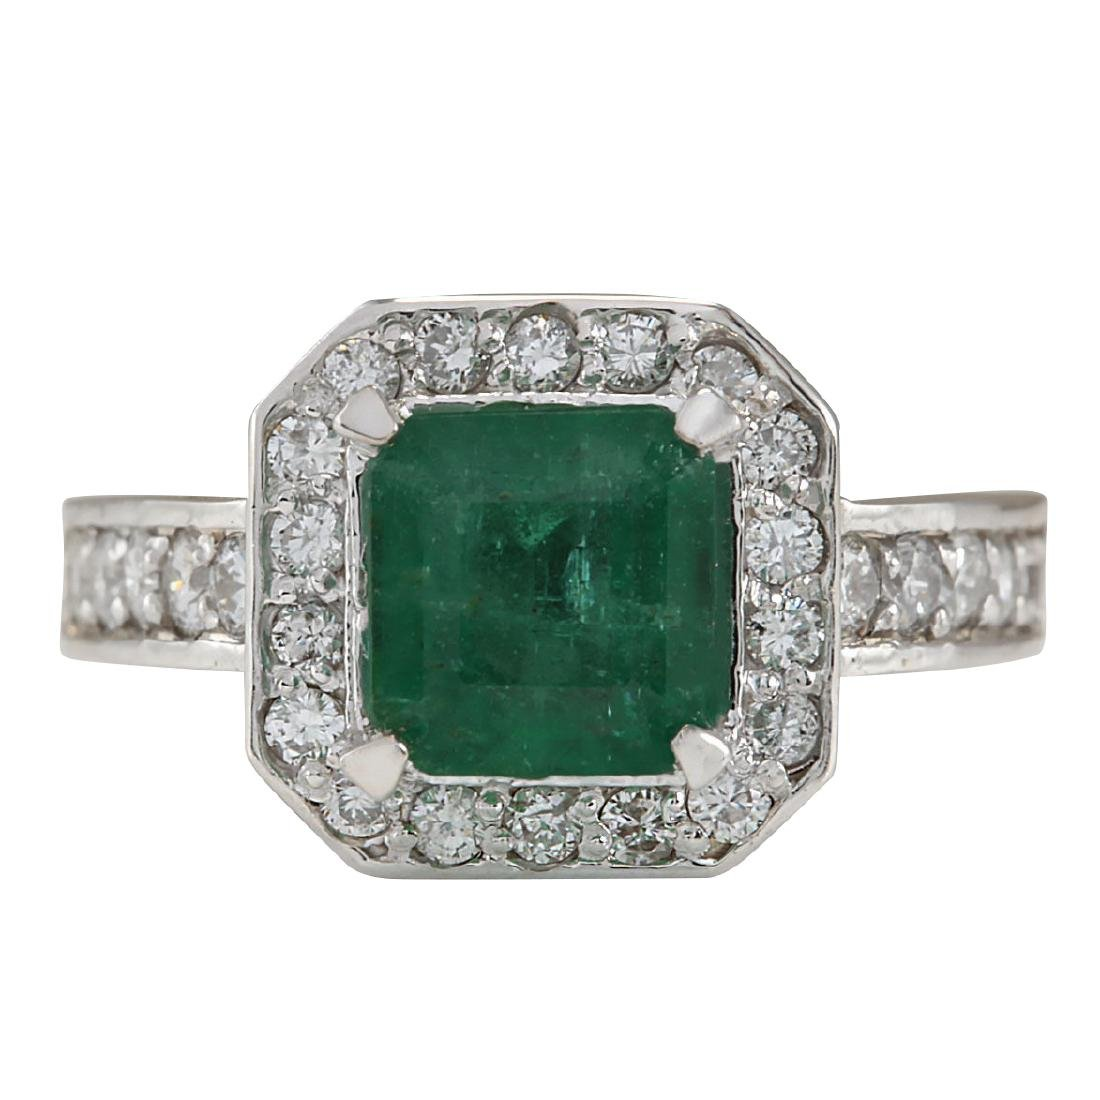 3.32CTW Natural Emerald And Diamond Ring In 18K White